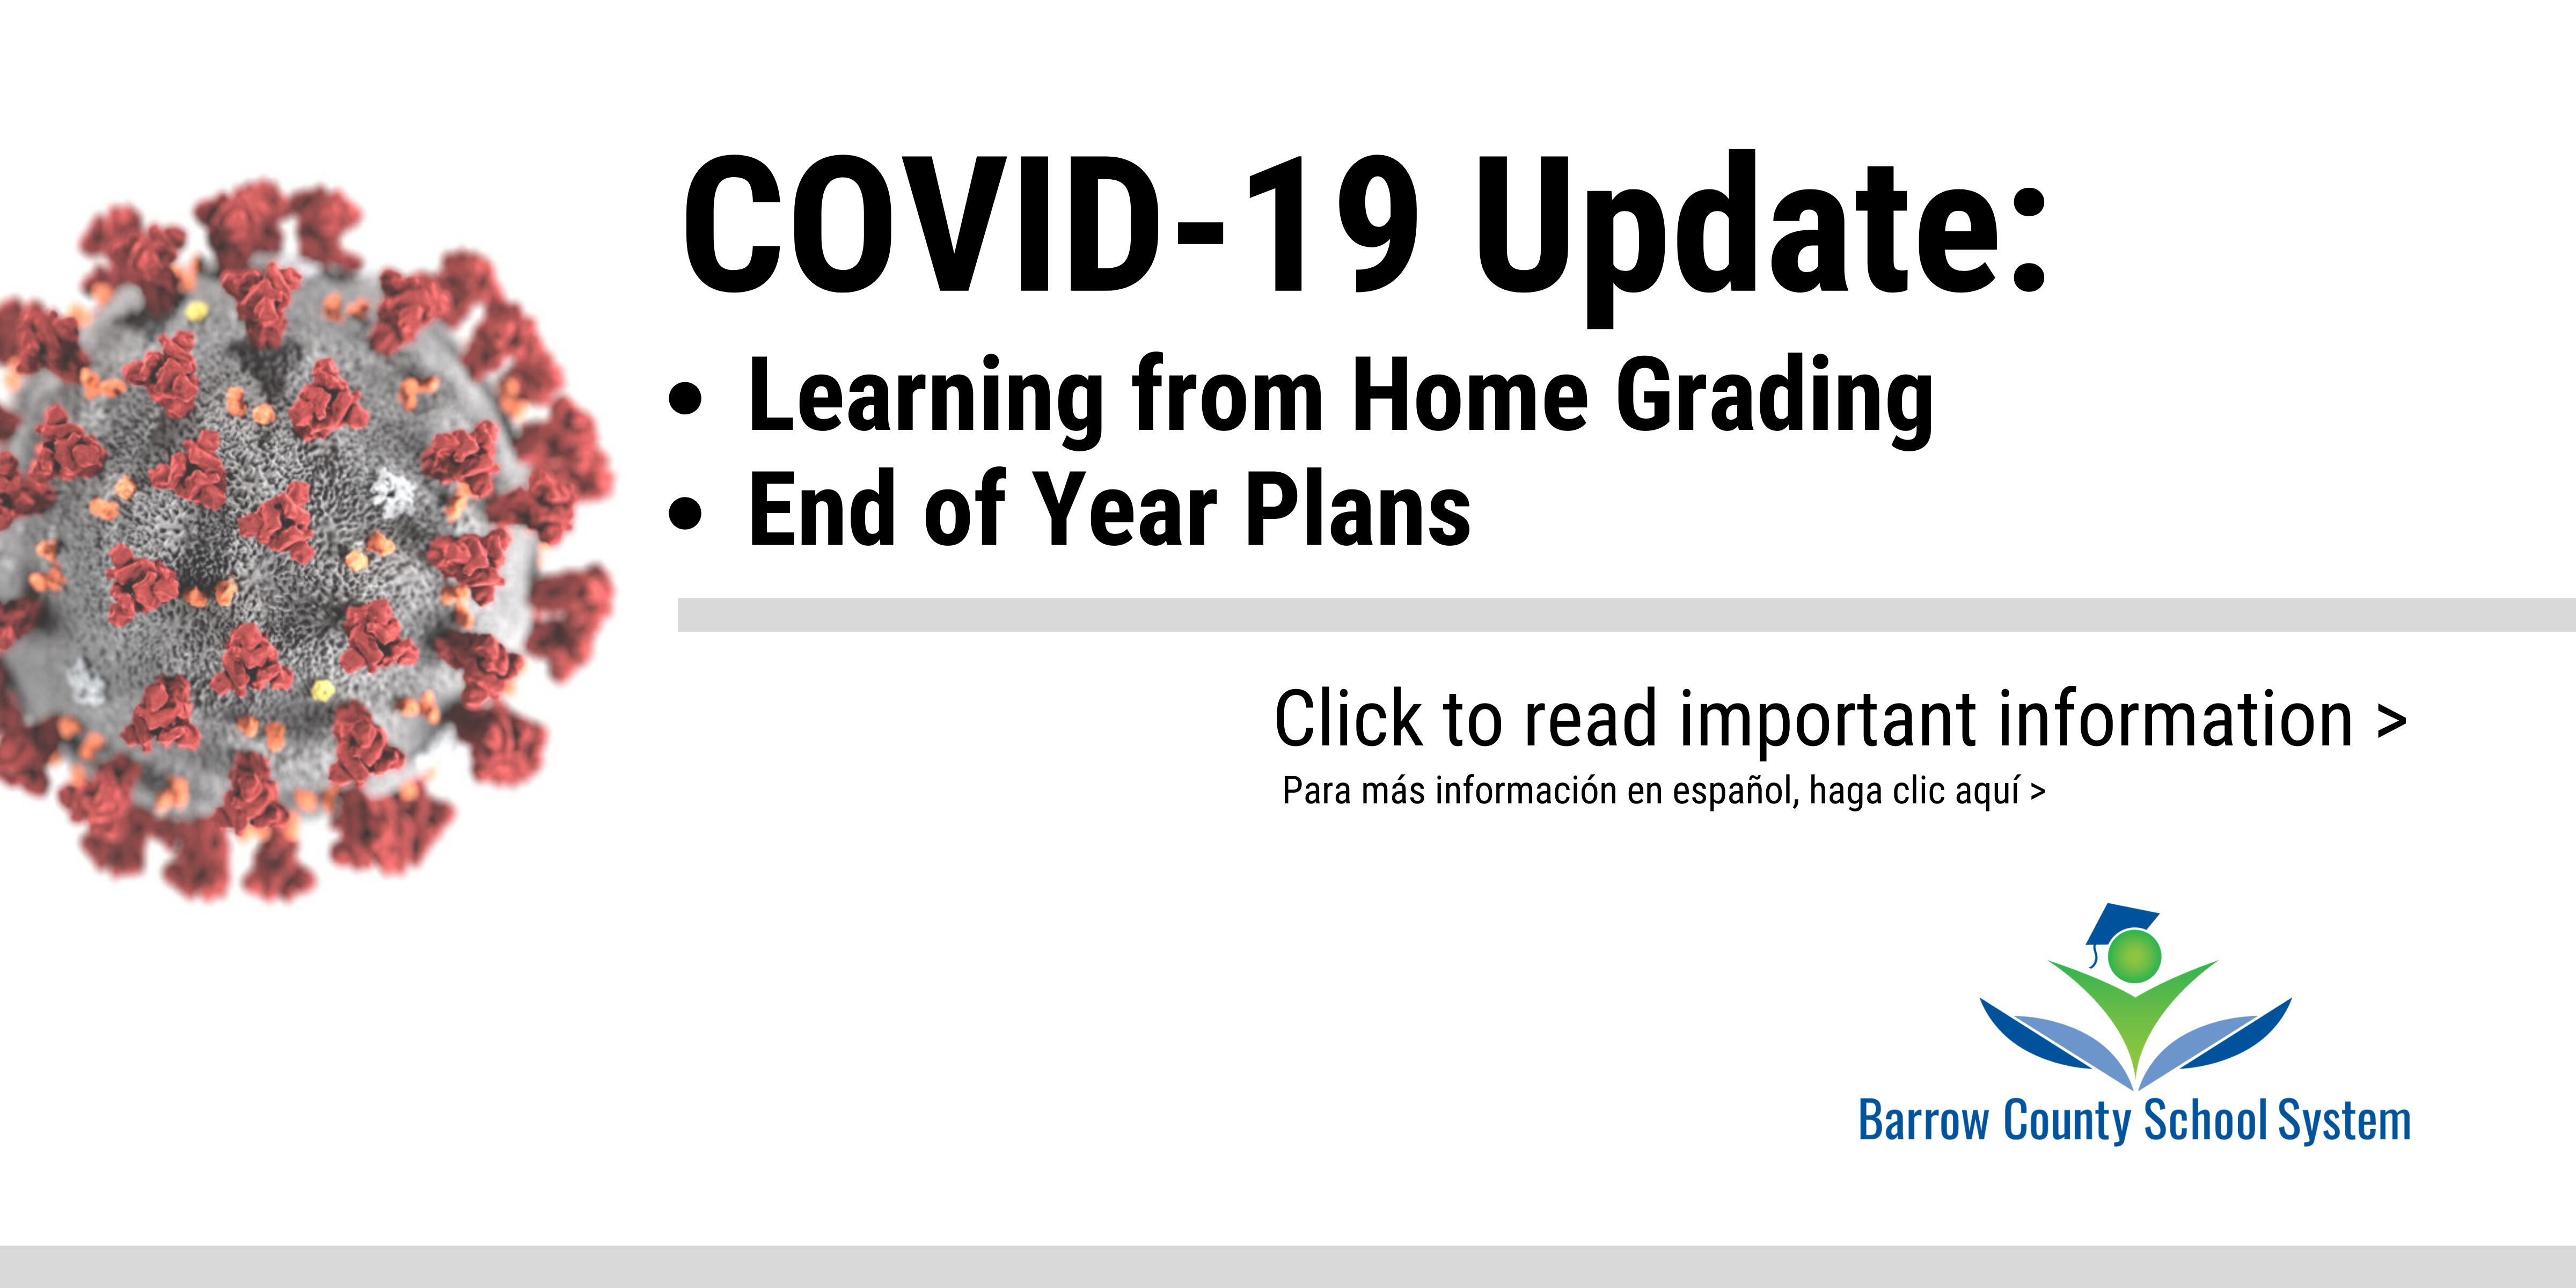 COVID-19 Update: Schools are closed starting Monday, March 16. Click to read important information.